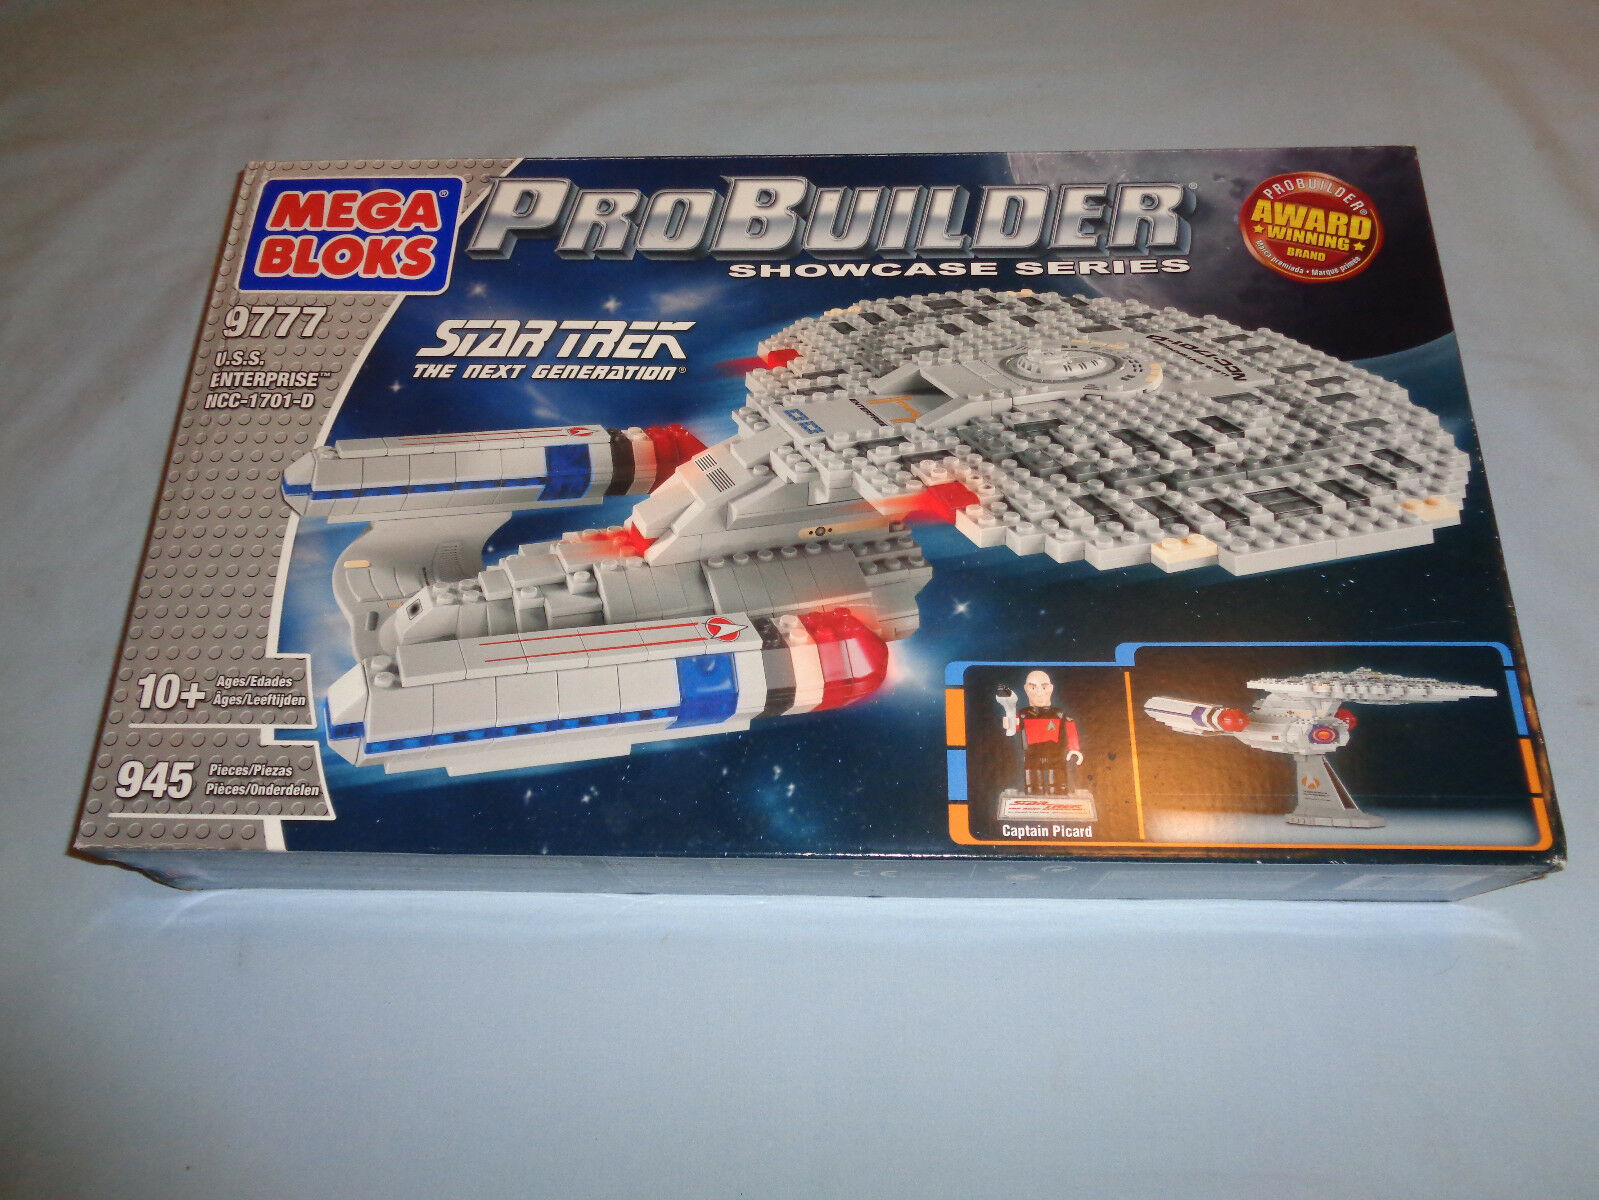 Mega Bloks Probuilder Star Trek The Next Generation Generation Generation The Enterprise NIB e9b294